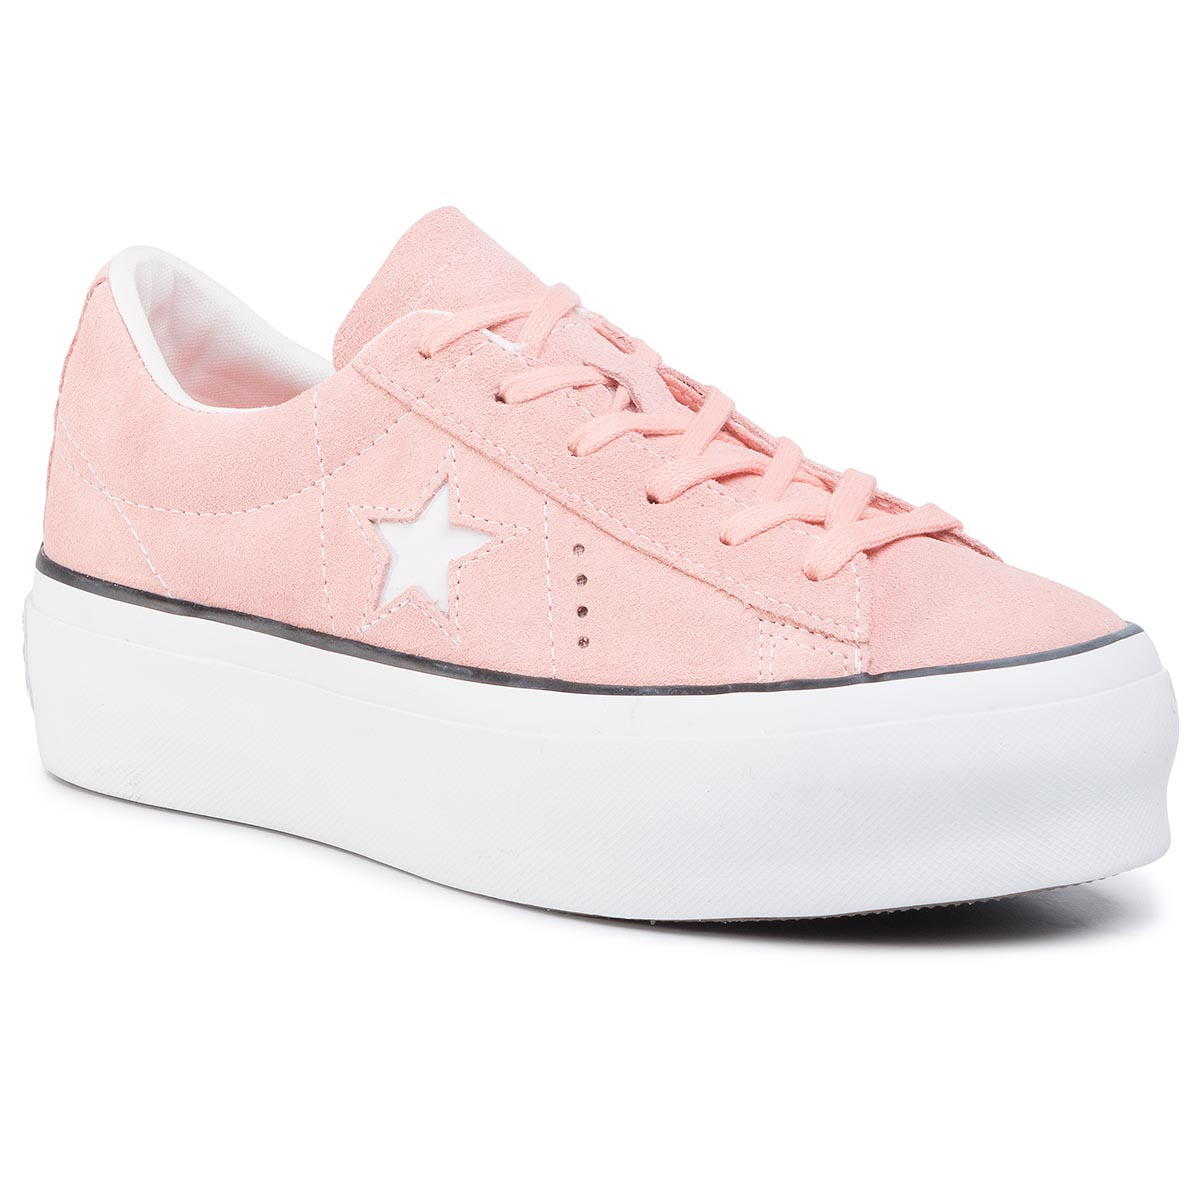 Sneakers CONVERSE - One Star Platform Ox Bleached Coral/Black/White